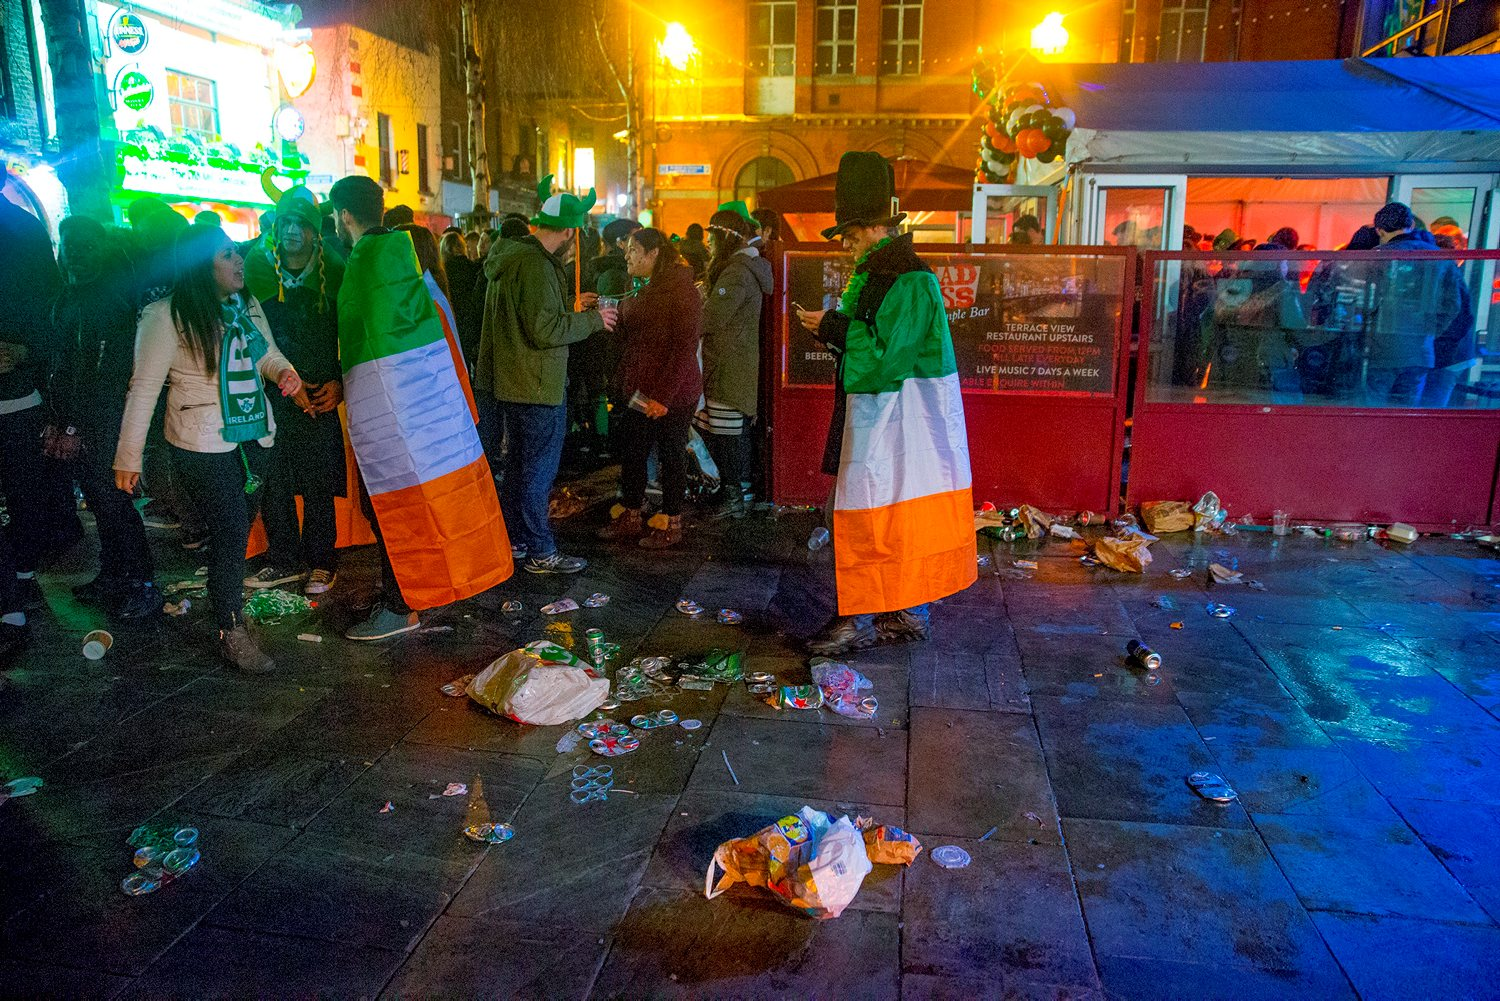 St Patric's Day, waste management, resources, EEB, deposit systems, recycling, circular economy, wasteless future, Ireland, USA,